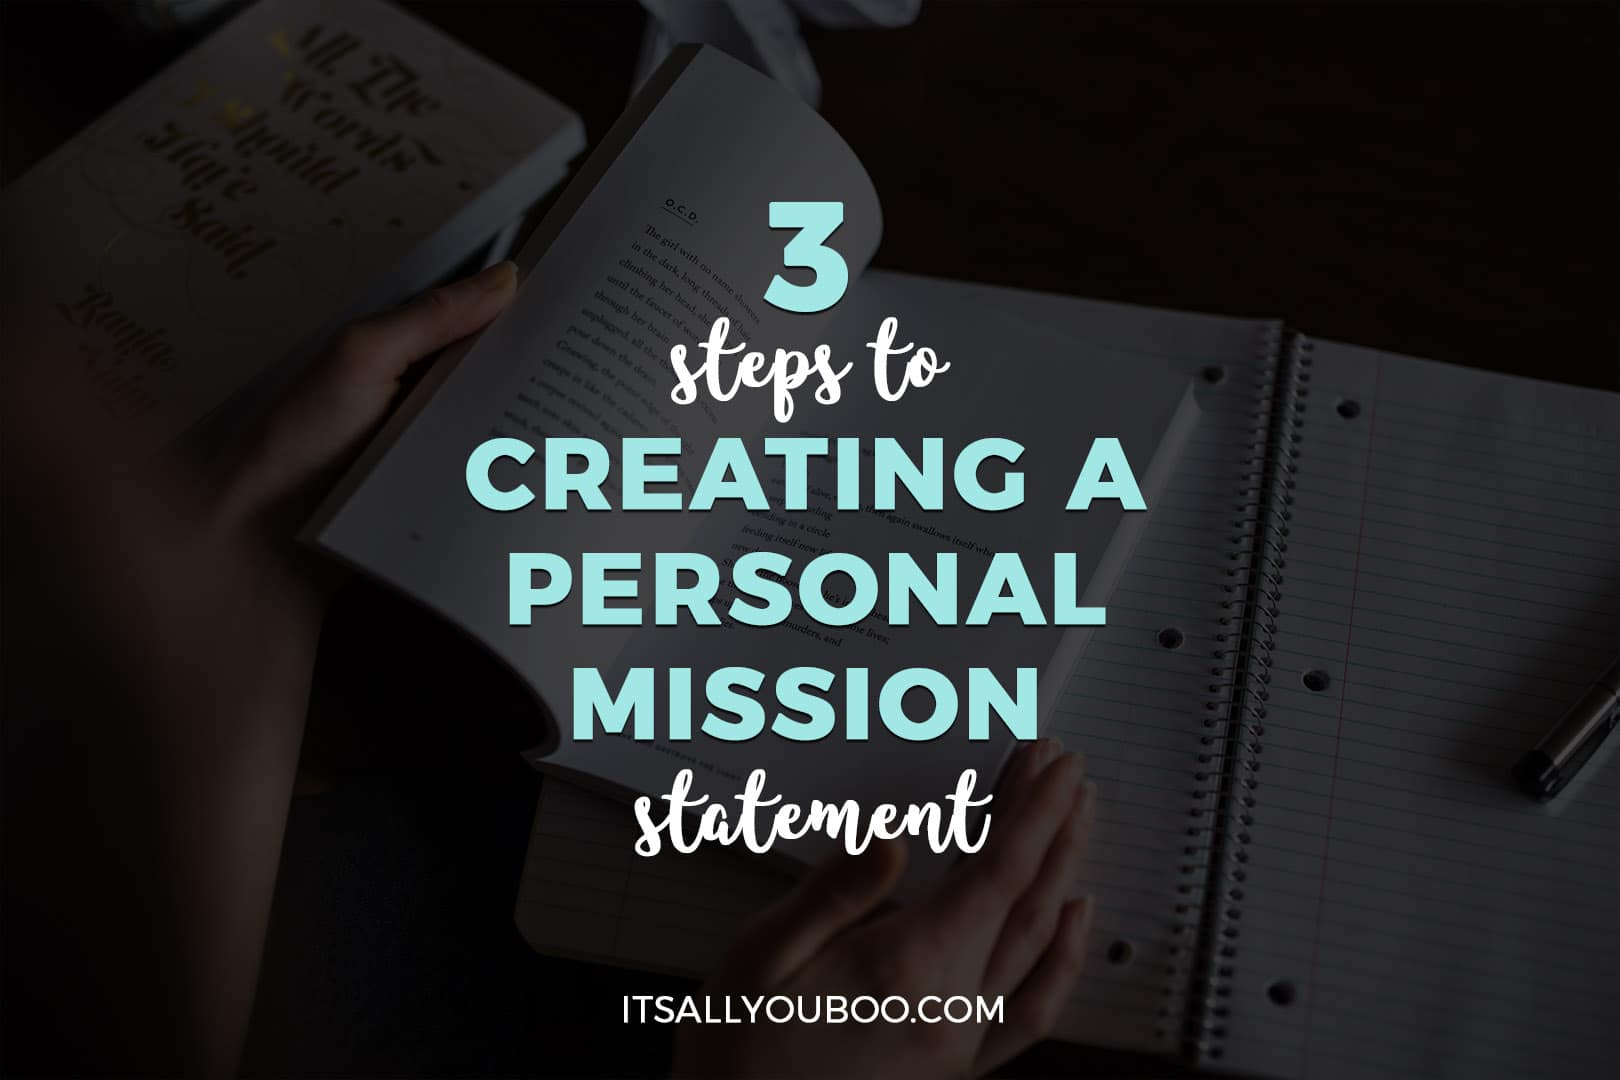 3 Steps to Creating a Personal Mission Statement